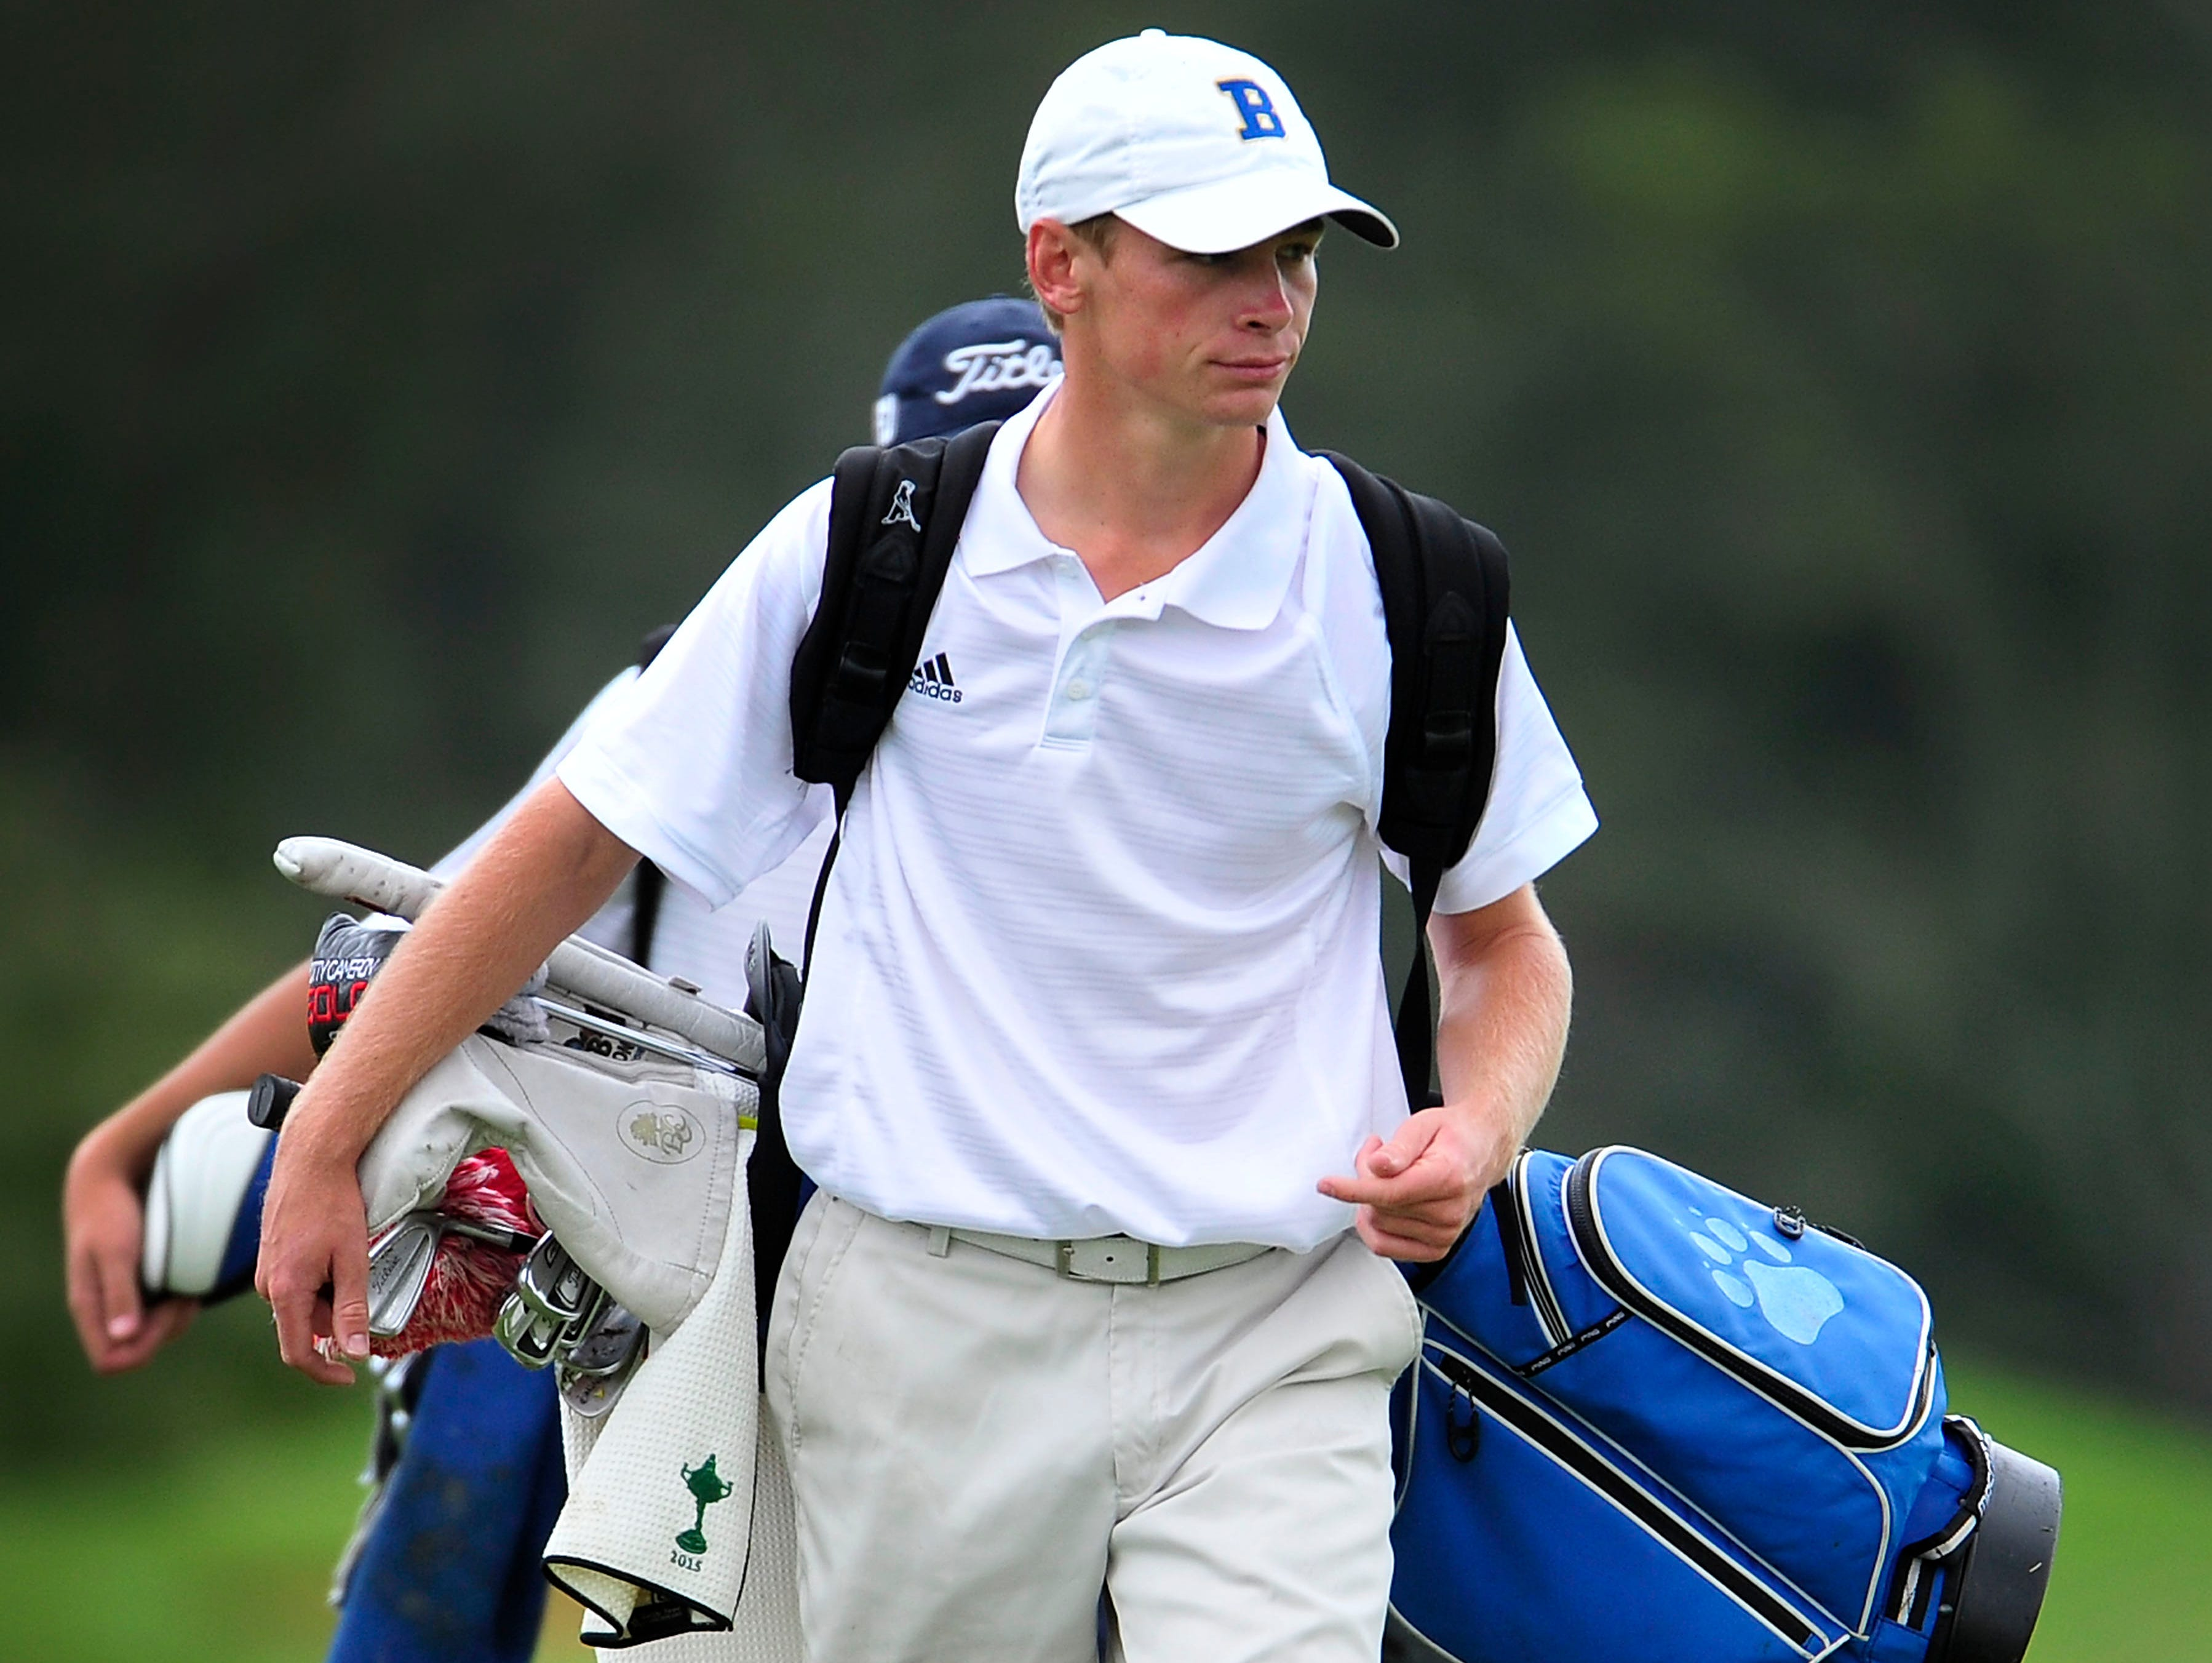 Brentwood's Trevor Johnson helped lead the Bruins to the Class AAA state golf title as a team.